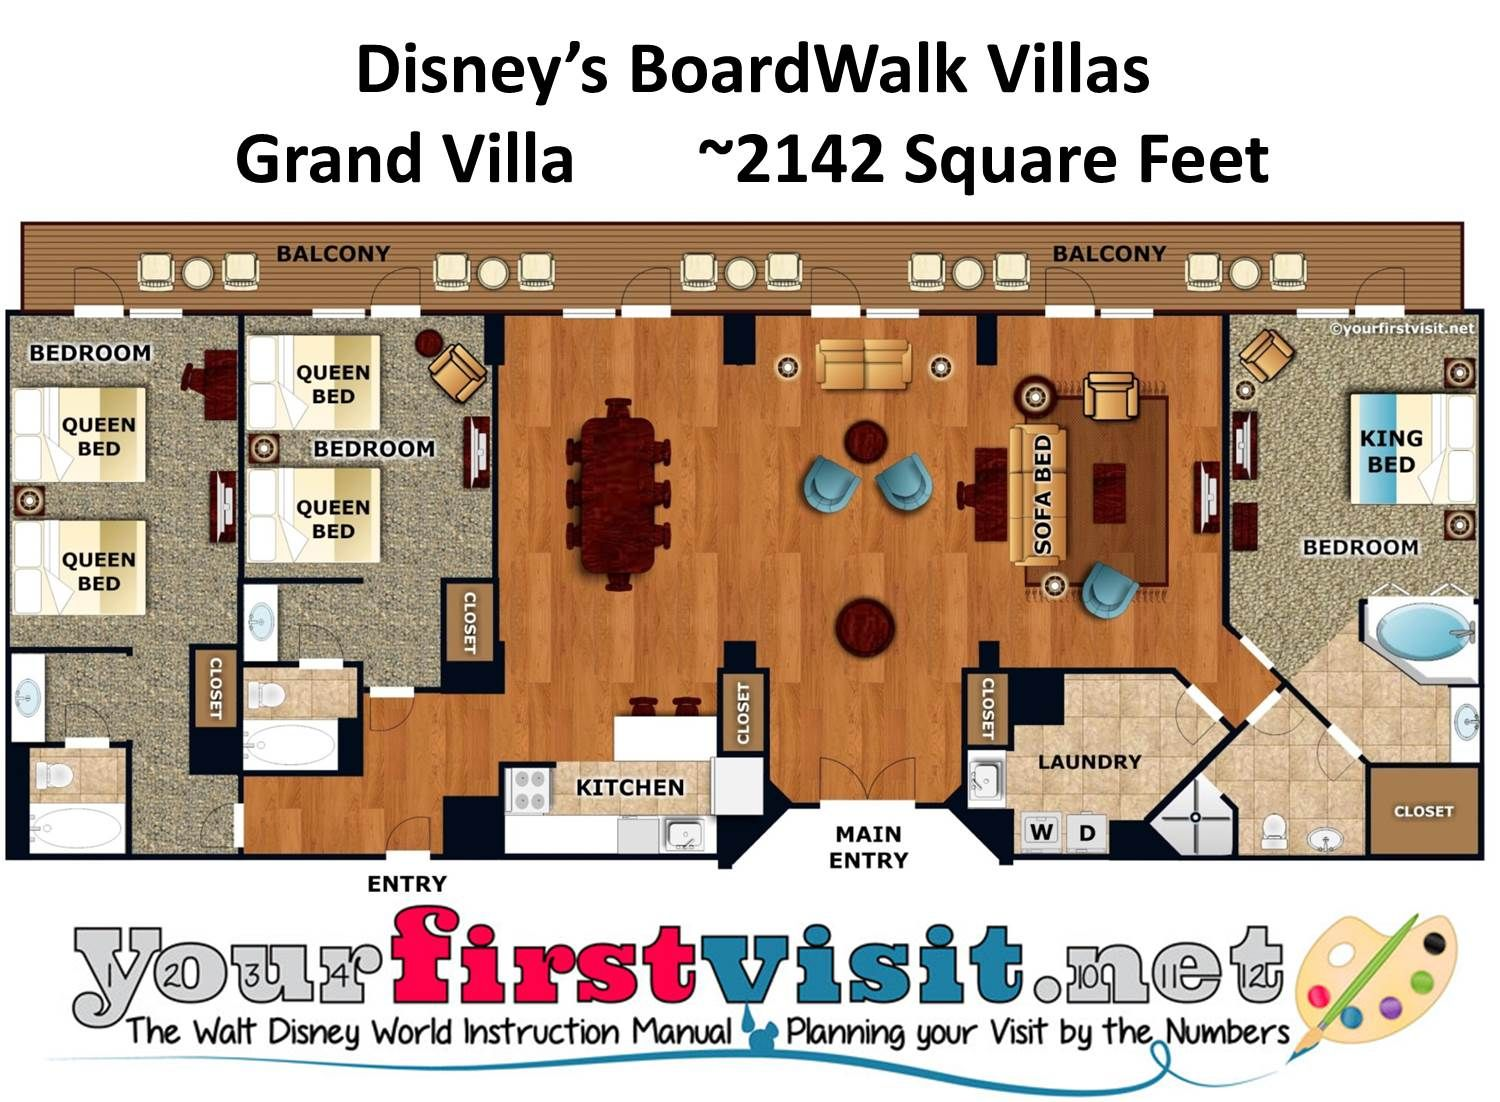 Accommodations and theming at disneys boardwalk villas disney s accommodations and theming at disneys boardwalk villas sciox Image collections